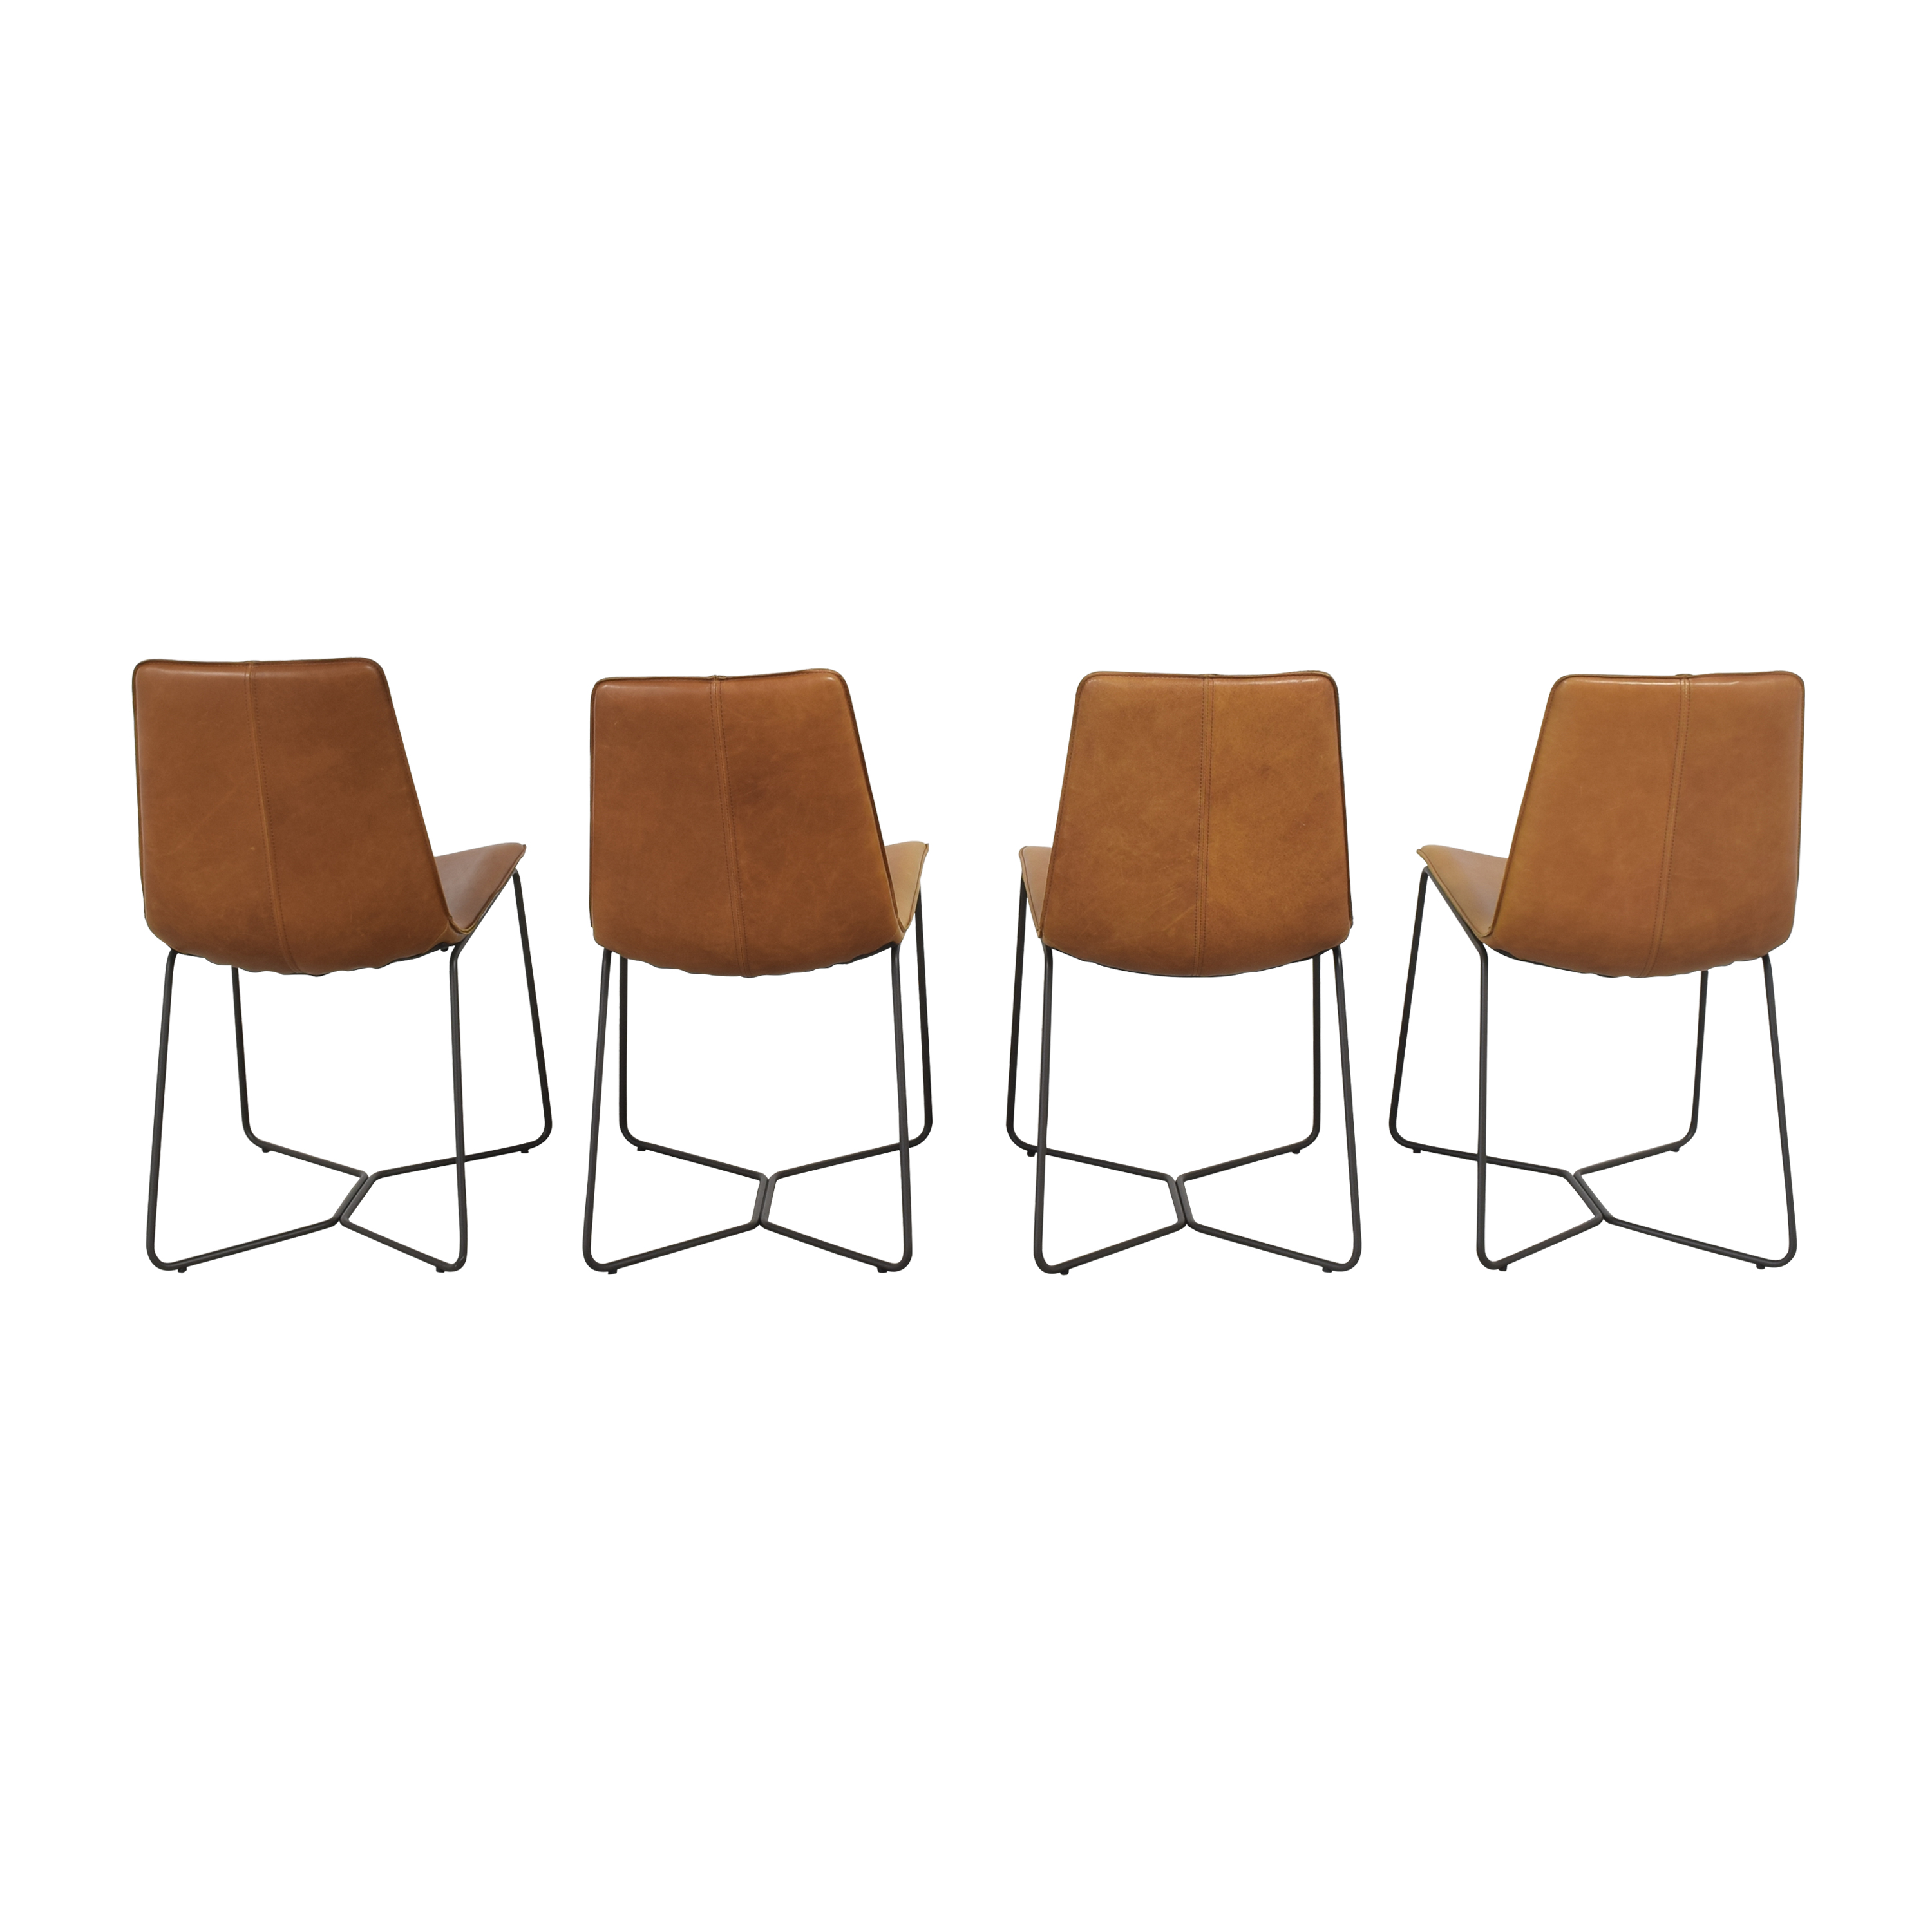 West Elm West Elm Slope Dining Chairs coupon